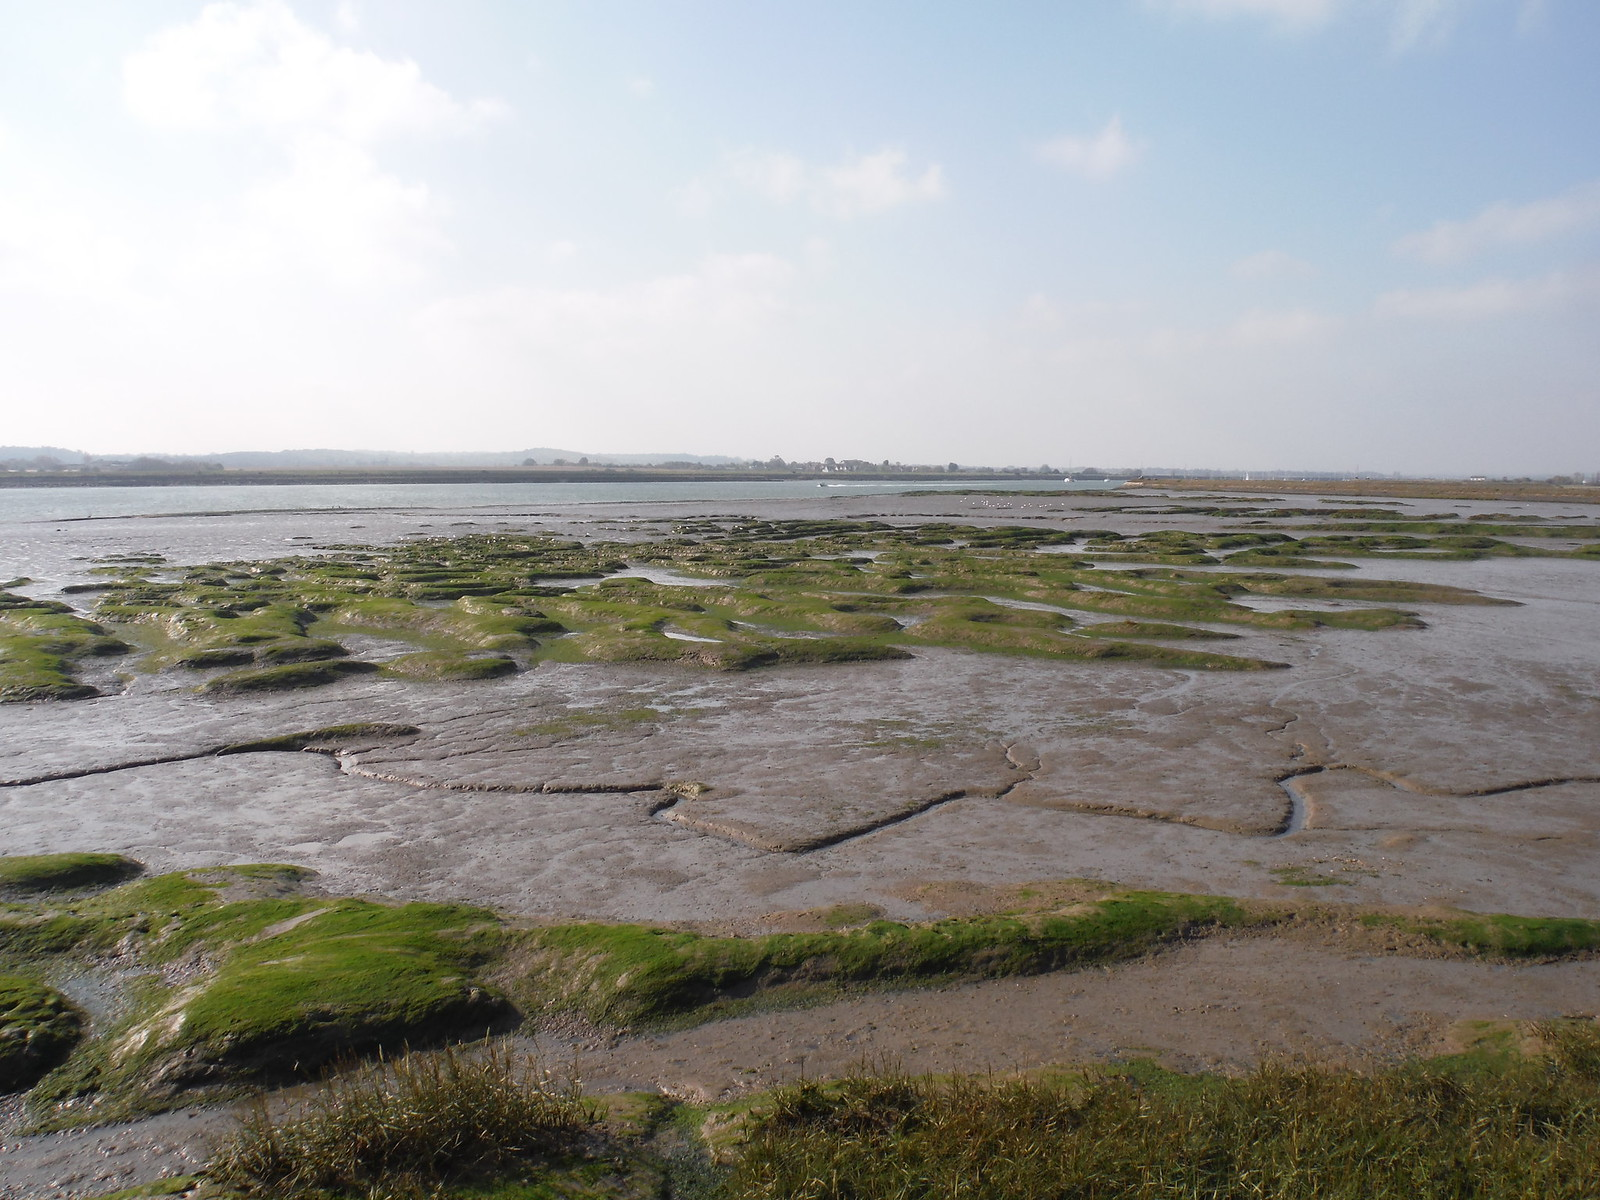 Mudflats SWC Walk 162 North Fambridge to Burnham-on-Crouch